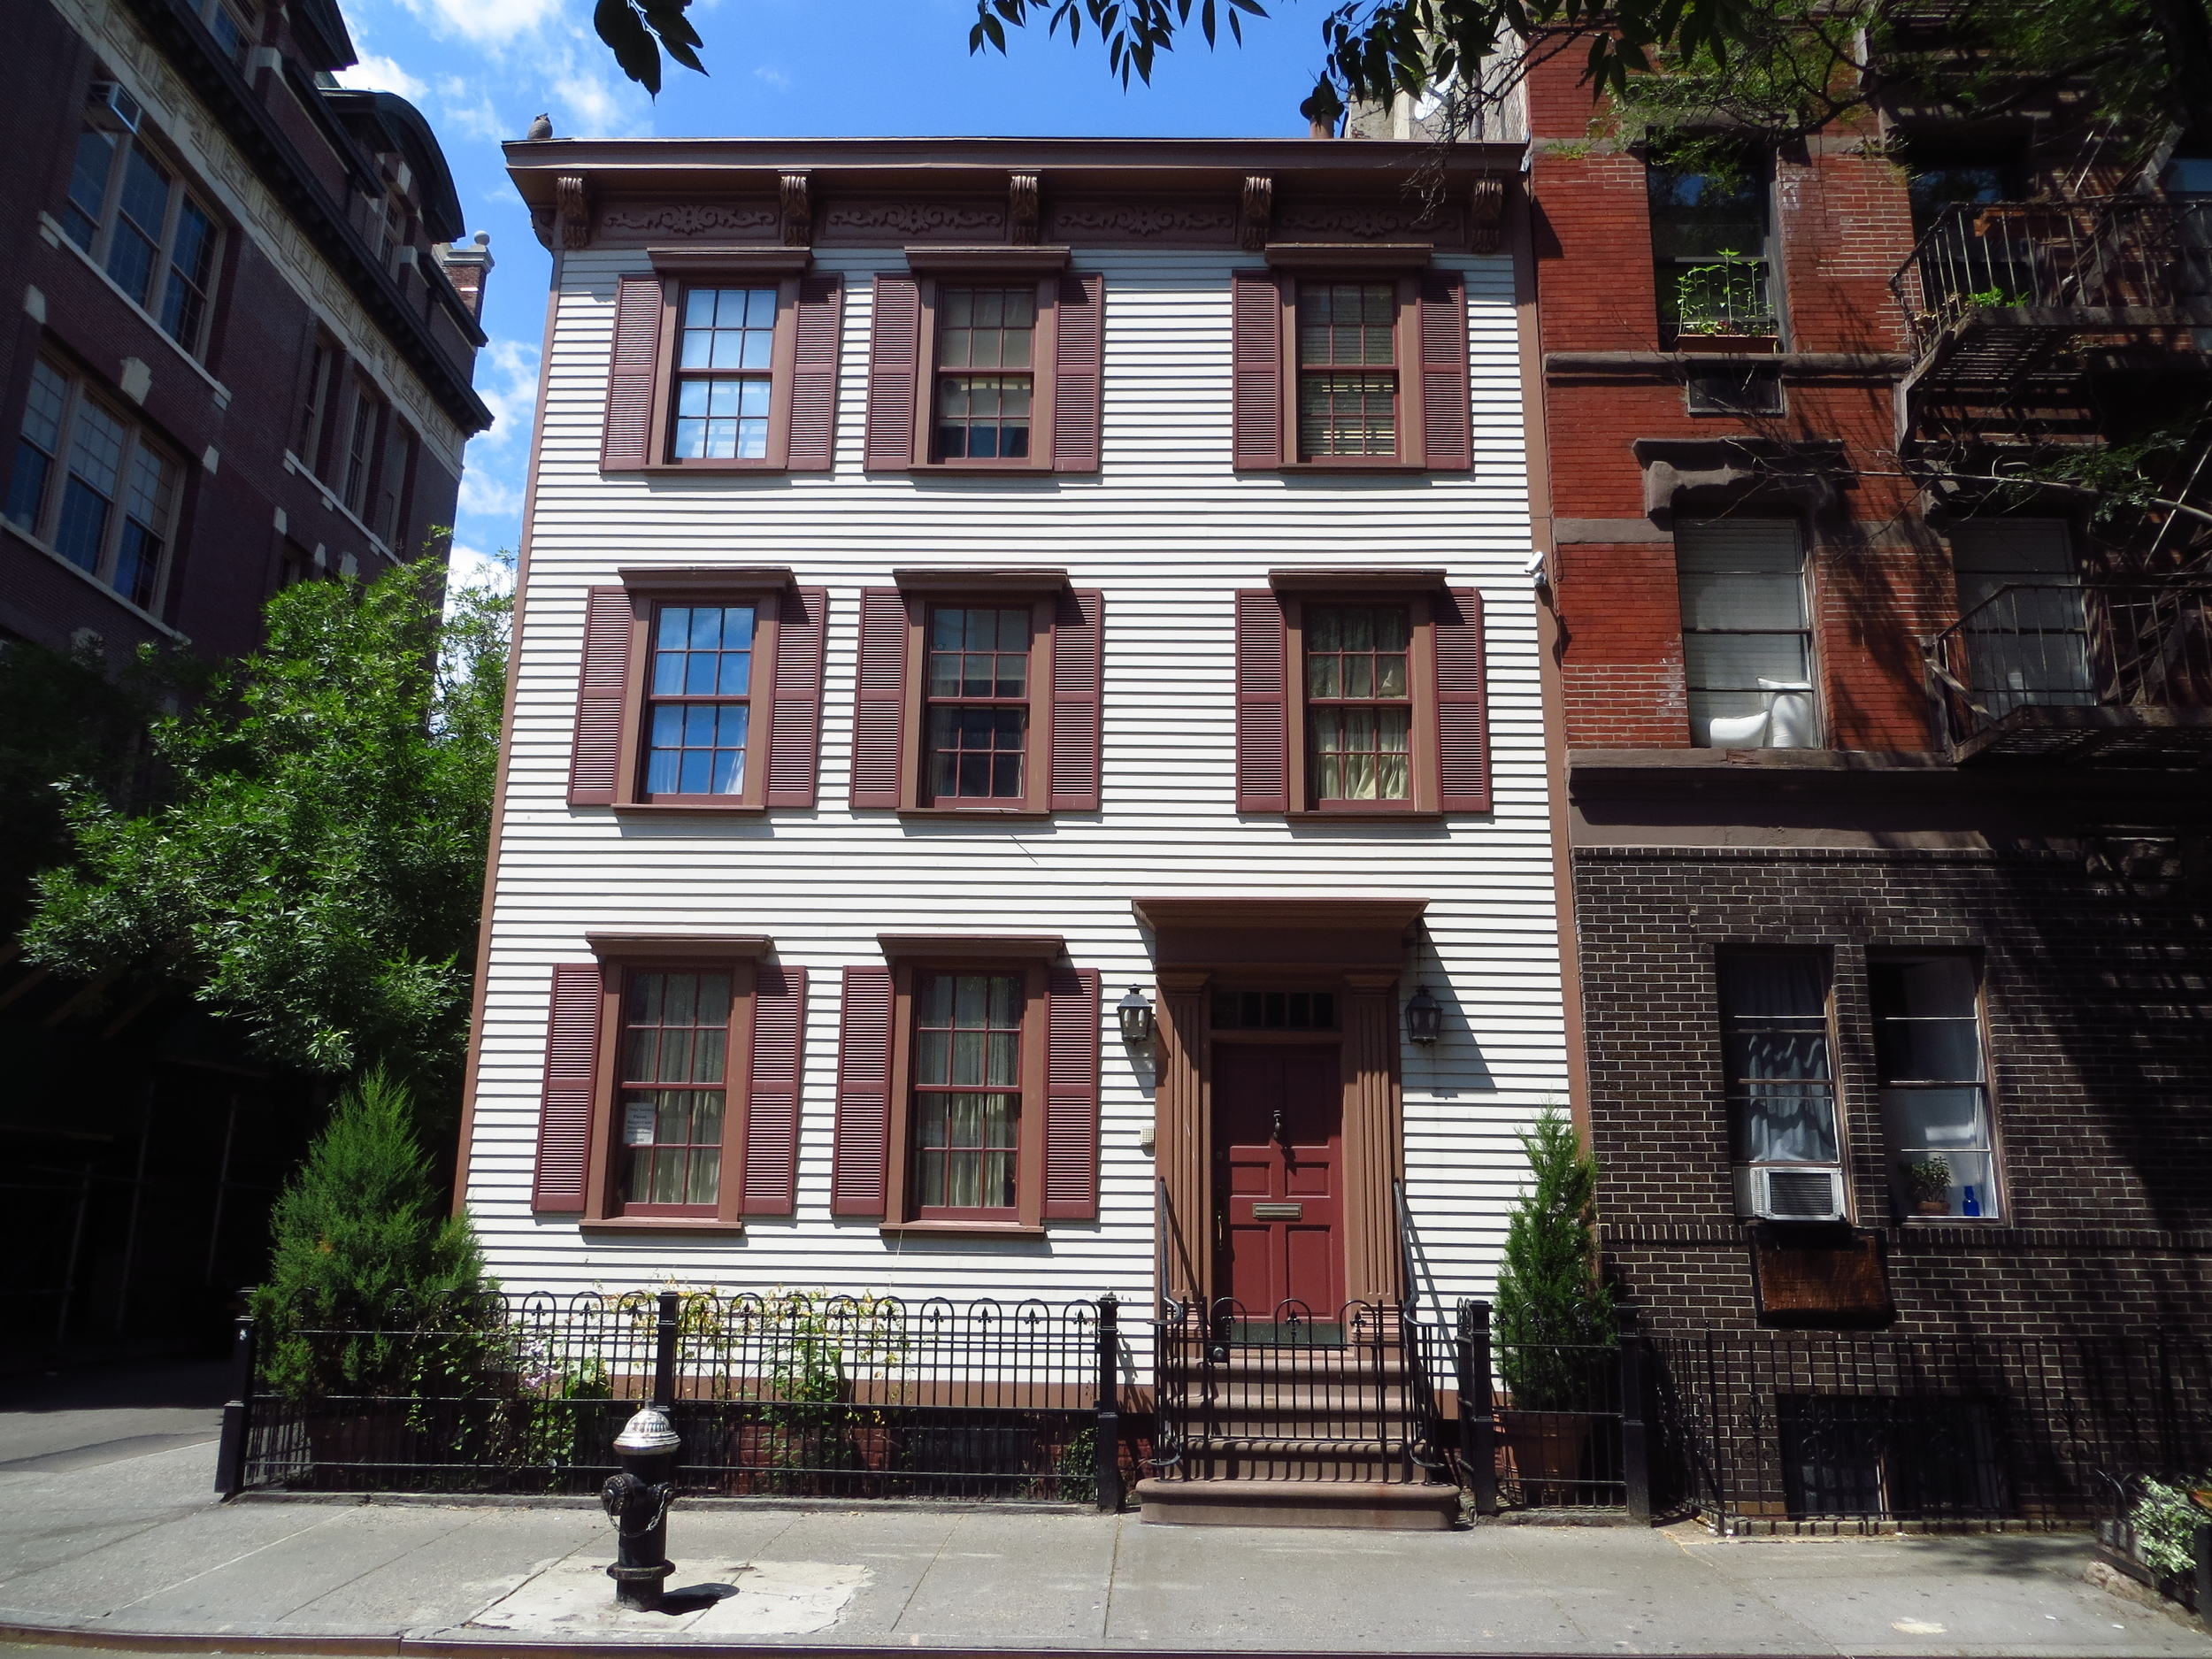 """This is the cool old house (b. 1822) across the street from the apartment building used as the establishing shot in """"Friends"""" episodes"""